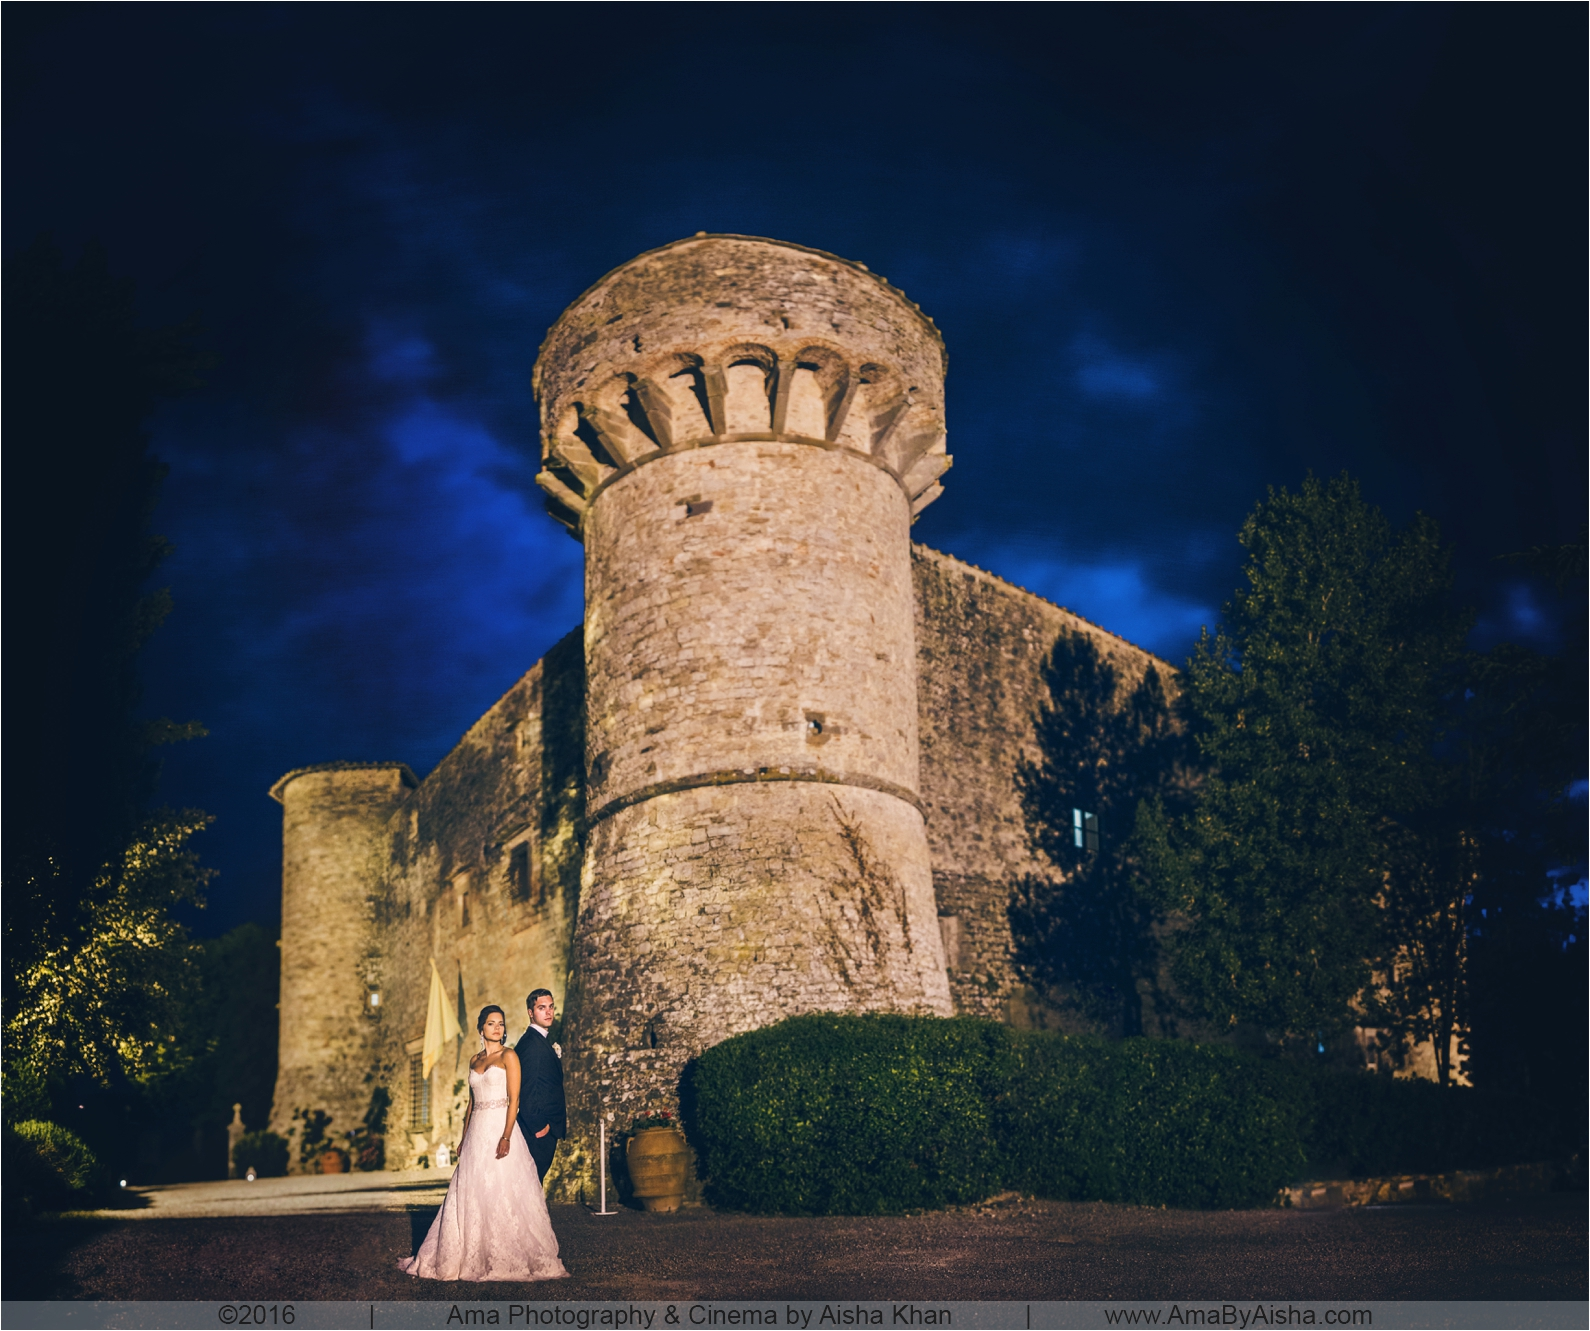 Destination wedding photography photographer